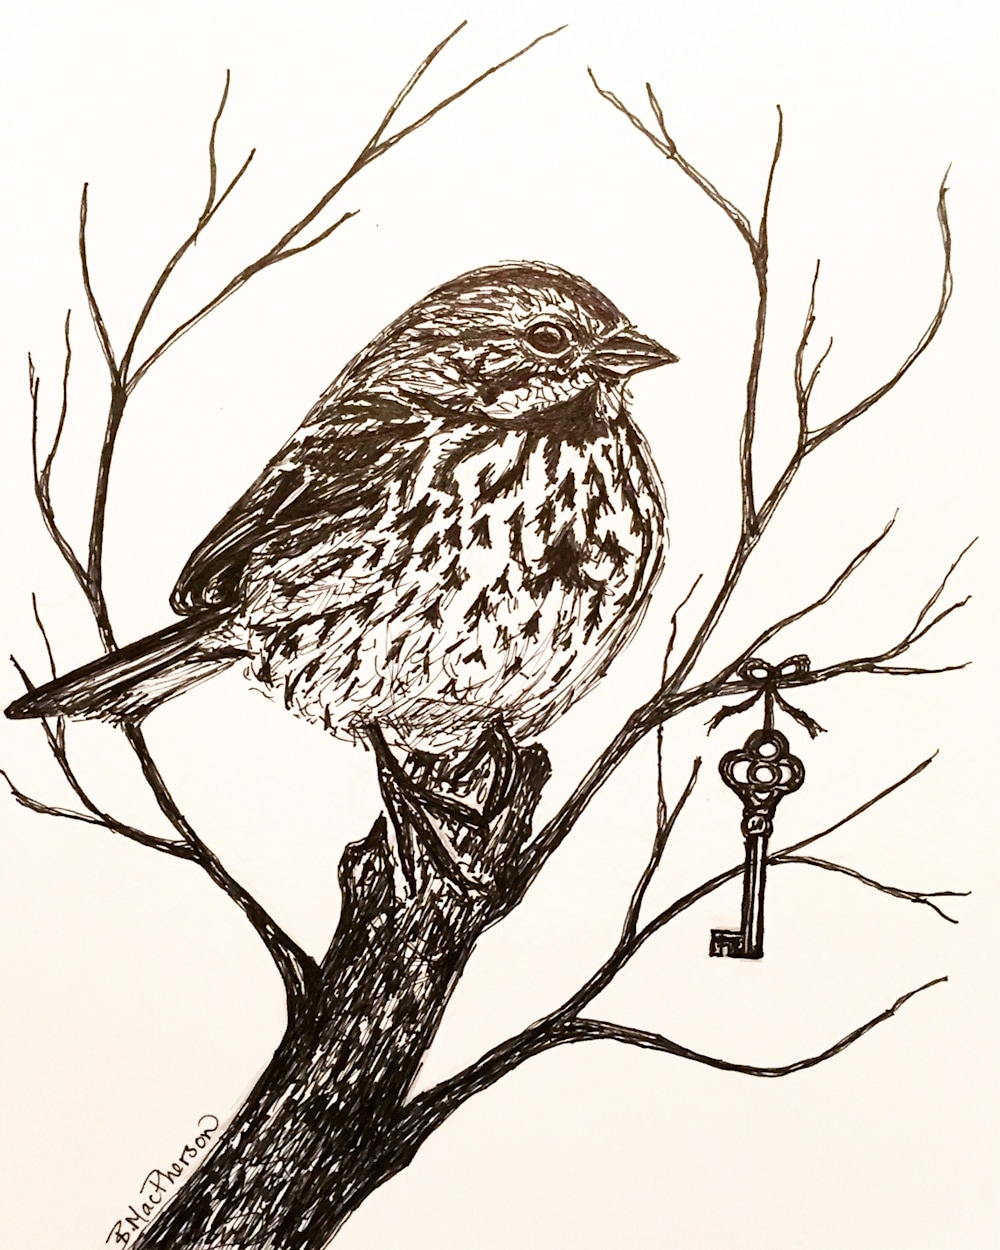 Song Sparrow with Antique Key Illustration by Becky MacPherson